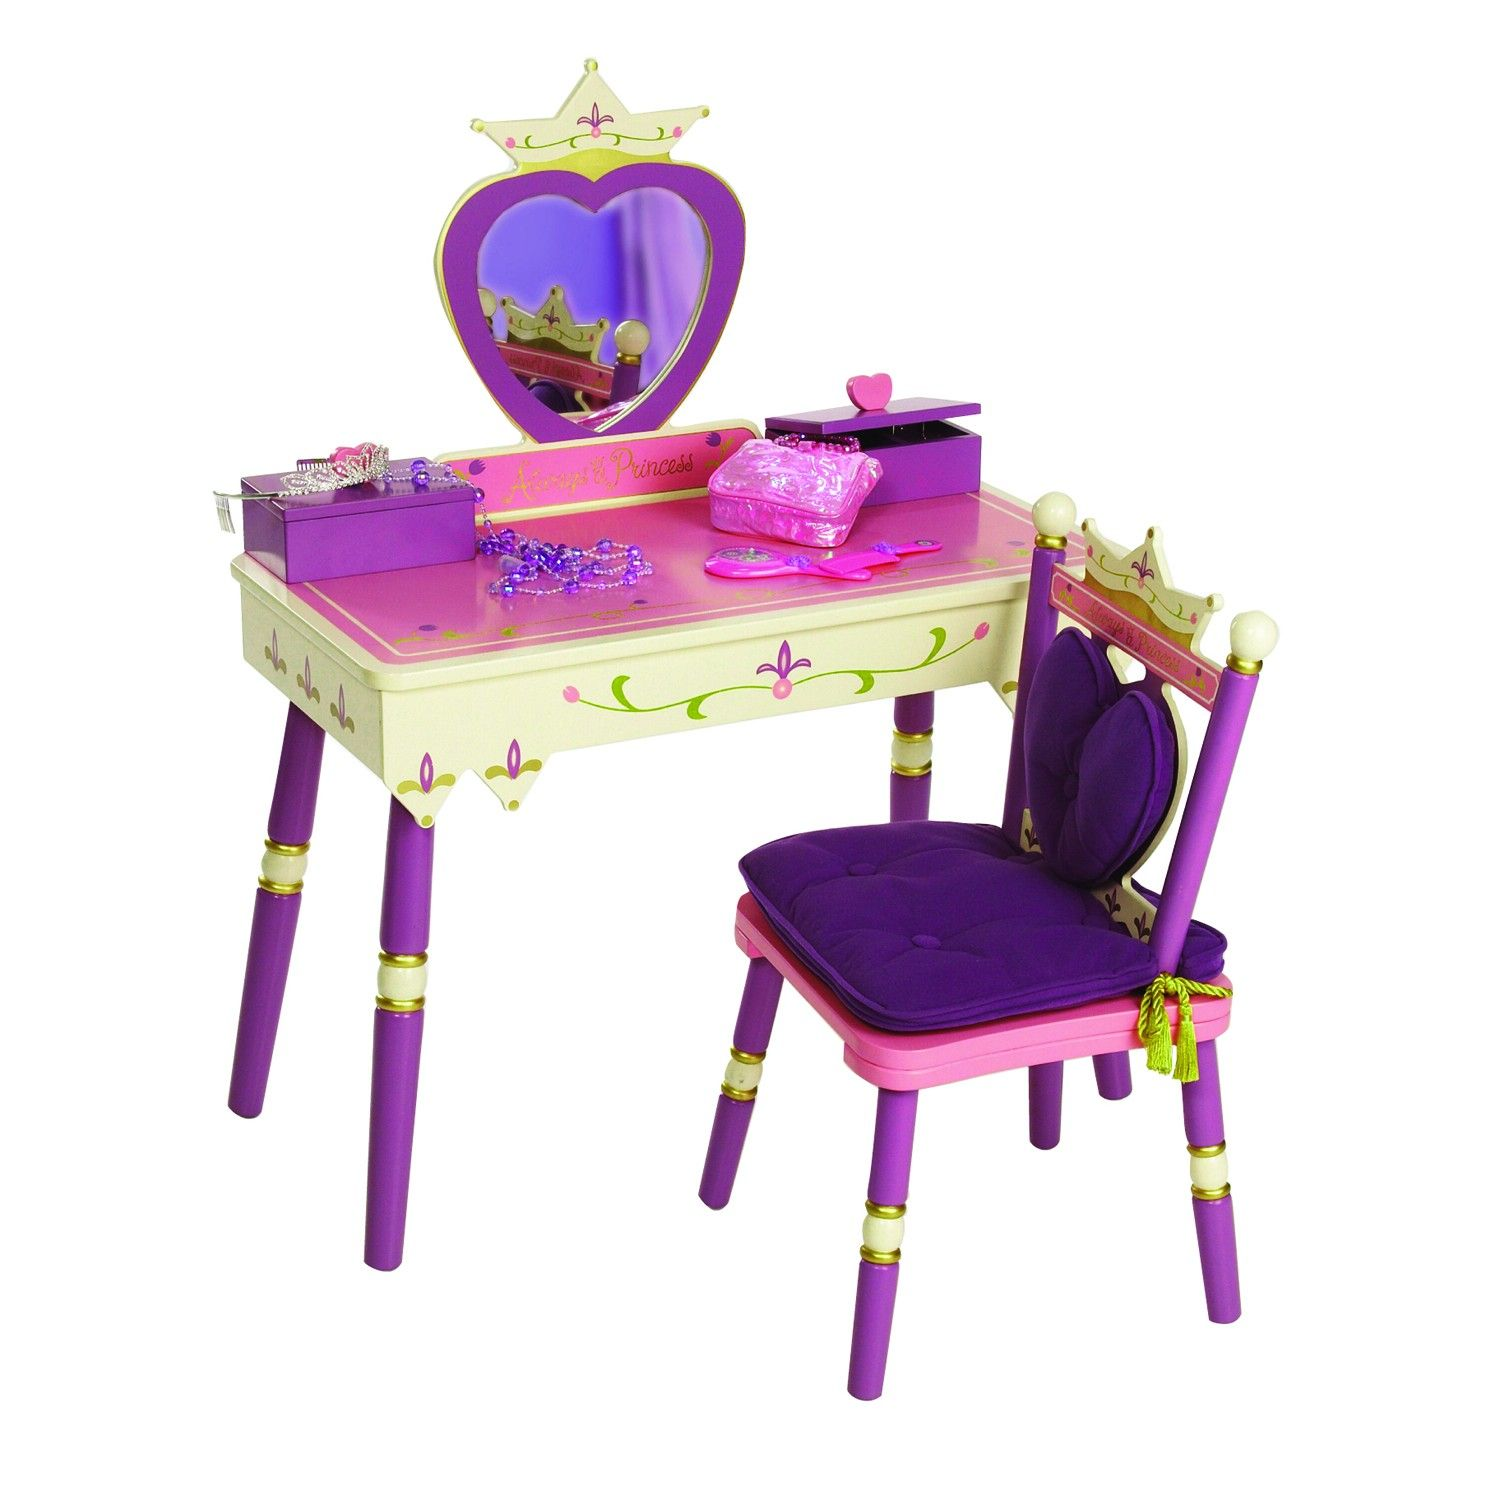 Levels Of Discovery Princess Vanity Table Chair Set Bunk Beds